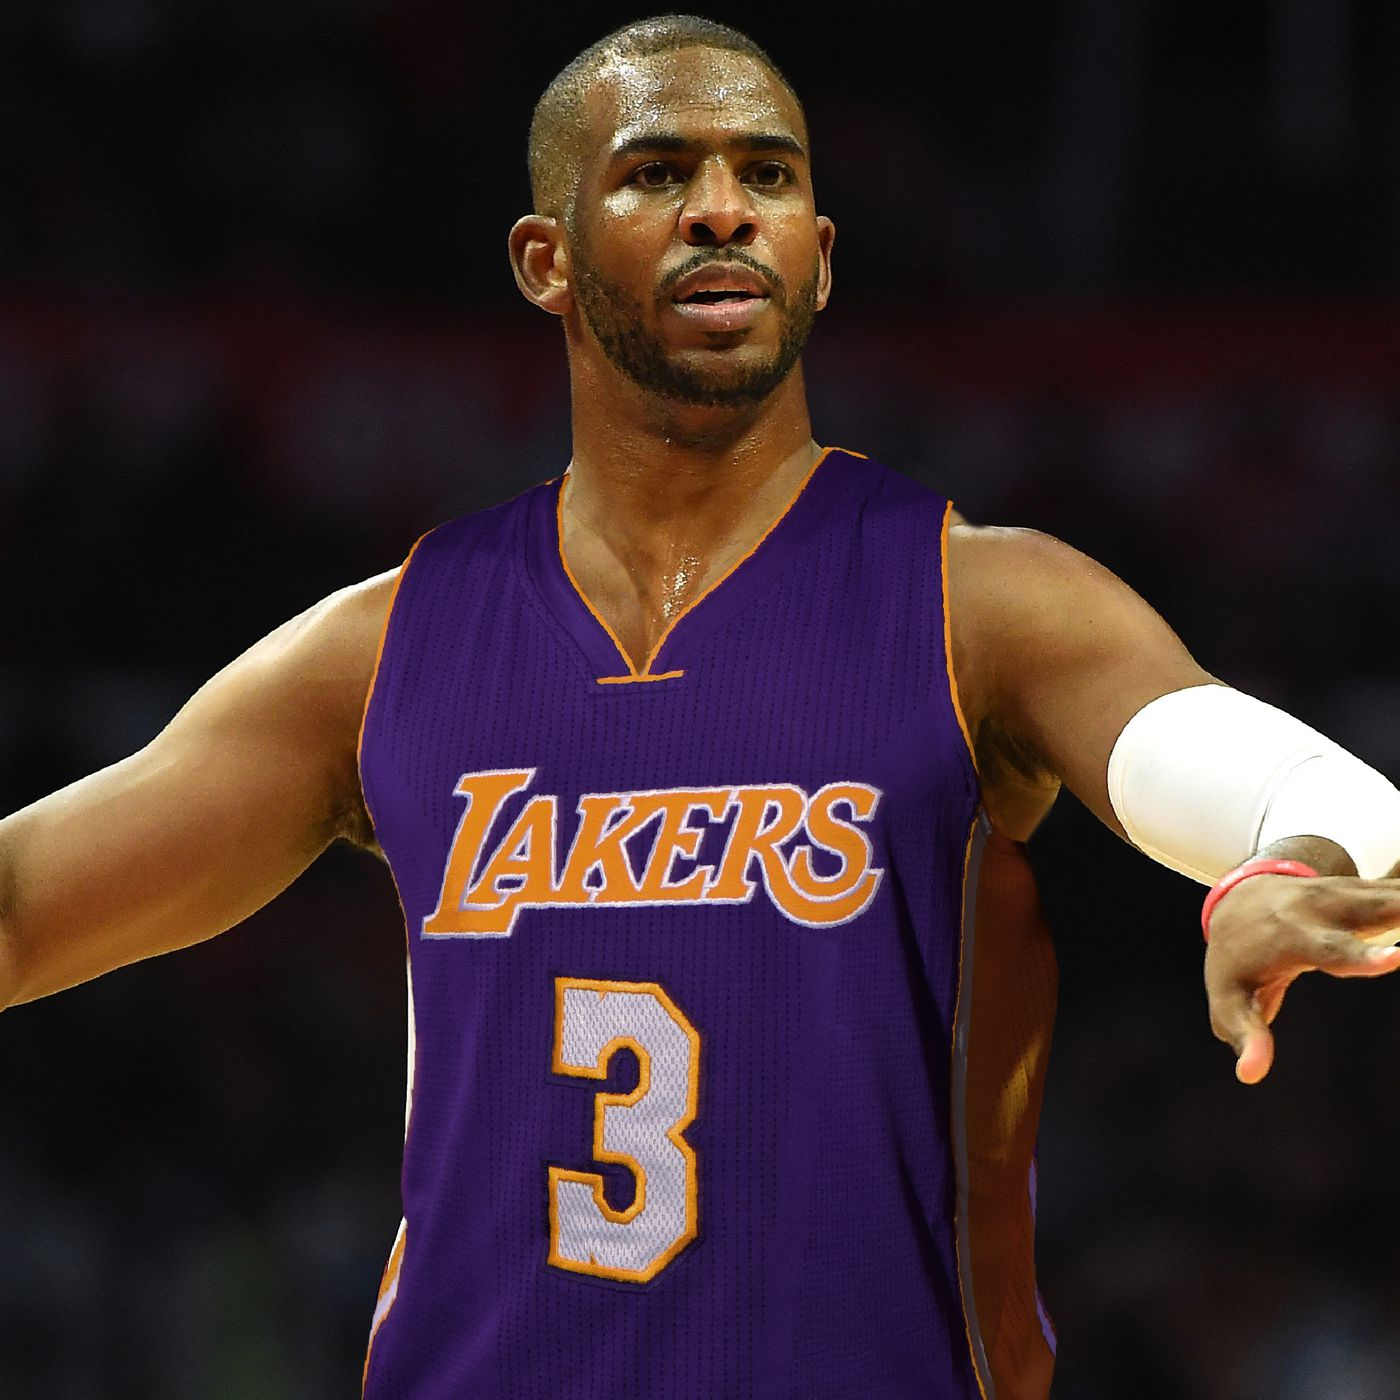 ad5631fbb1b What if the original Chris Paul trade to the Lakers wasn t vetoed  -  SBNation.com